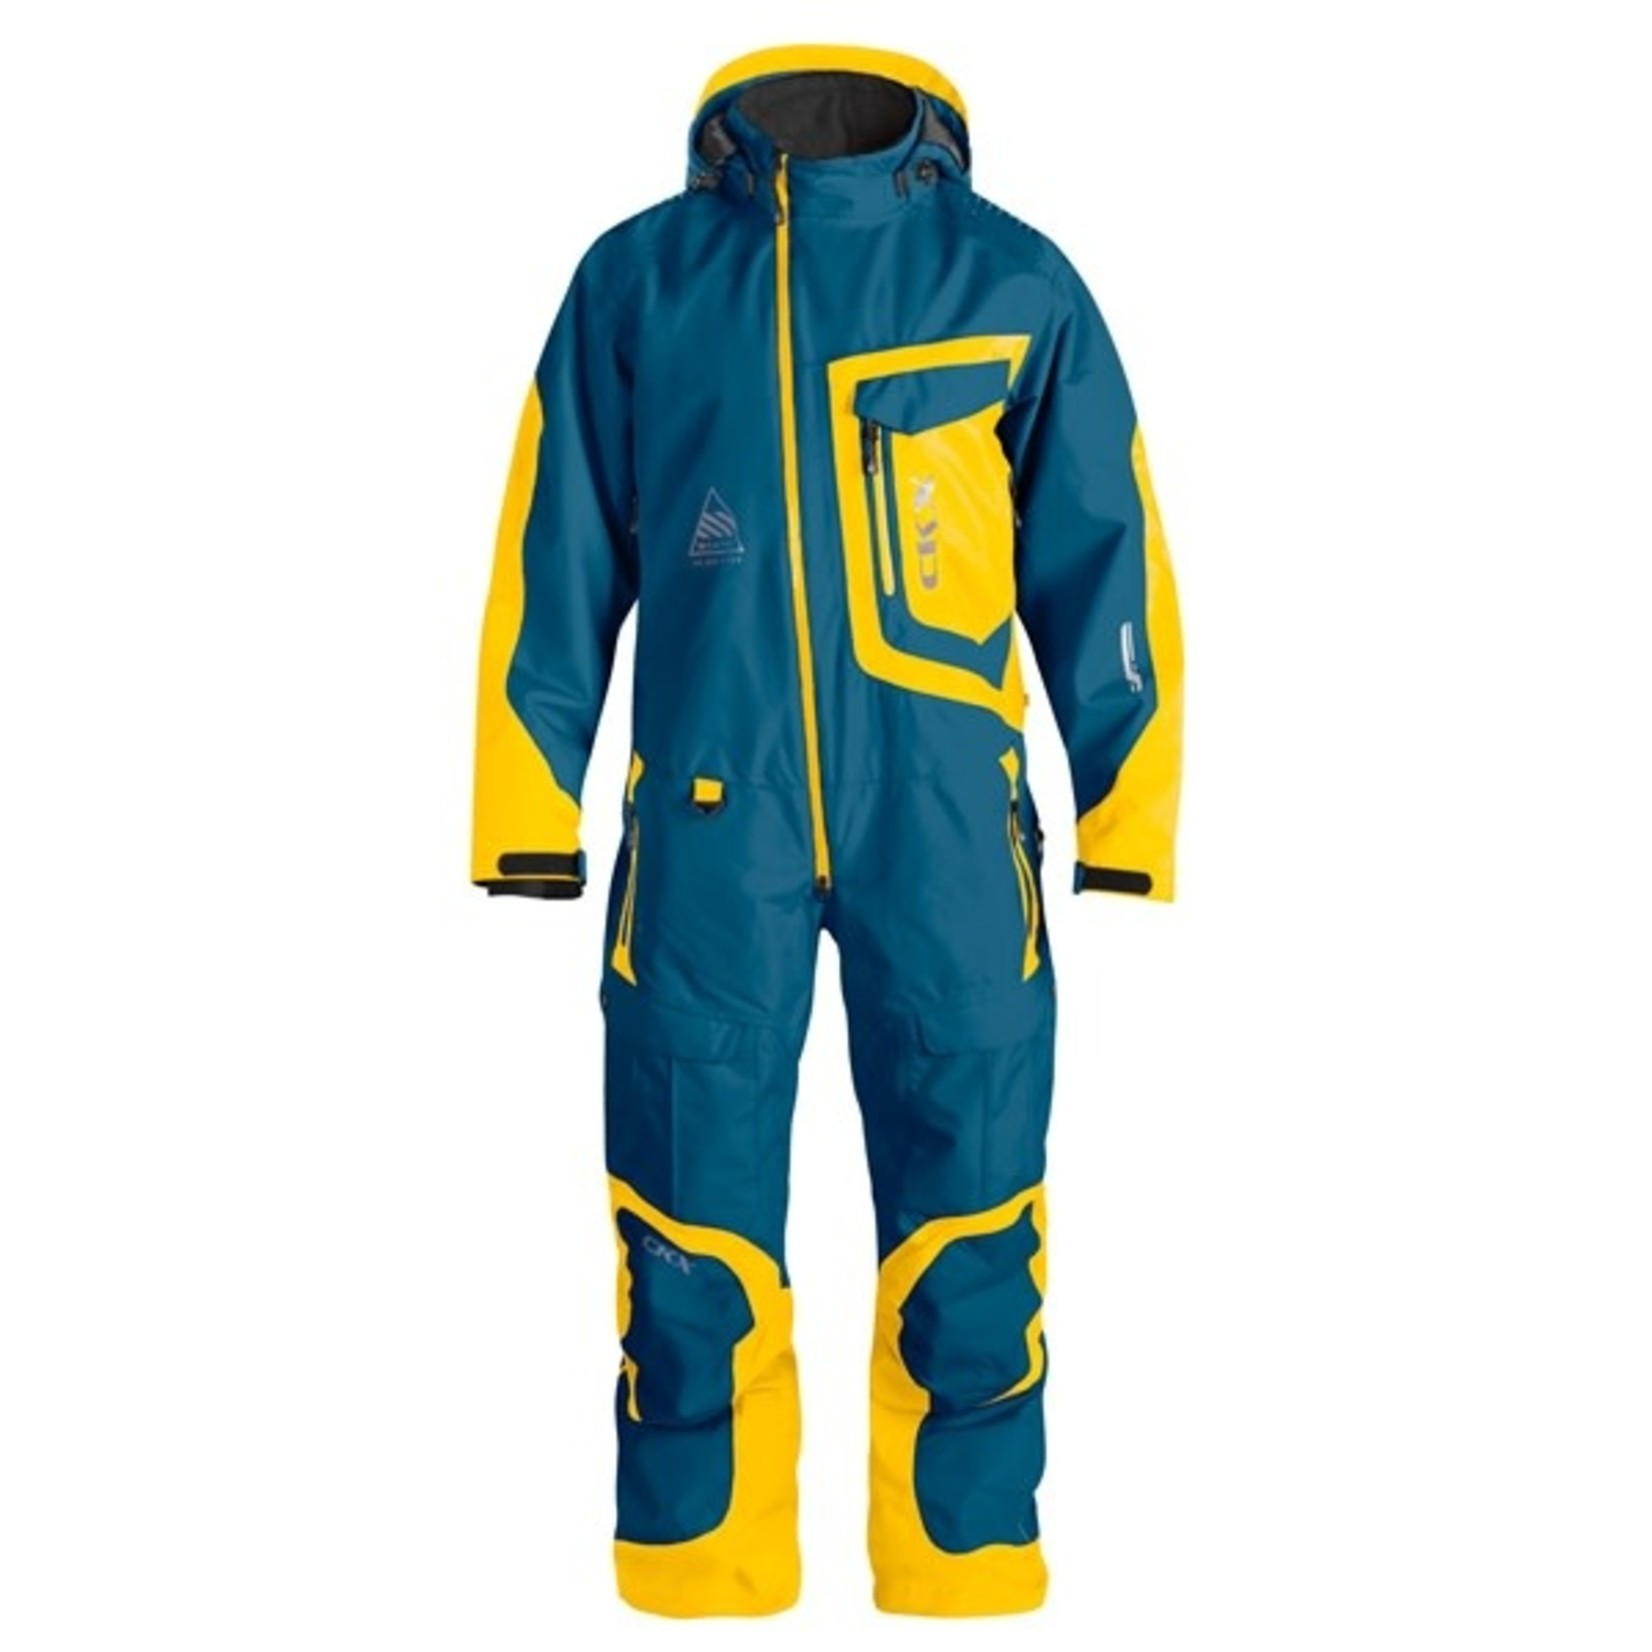 CKX 1-Piece Kit Elevation - XL (non-insulated)